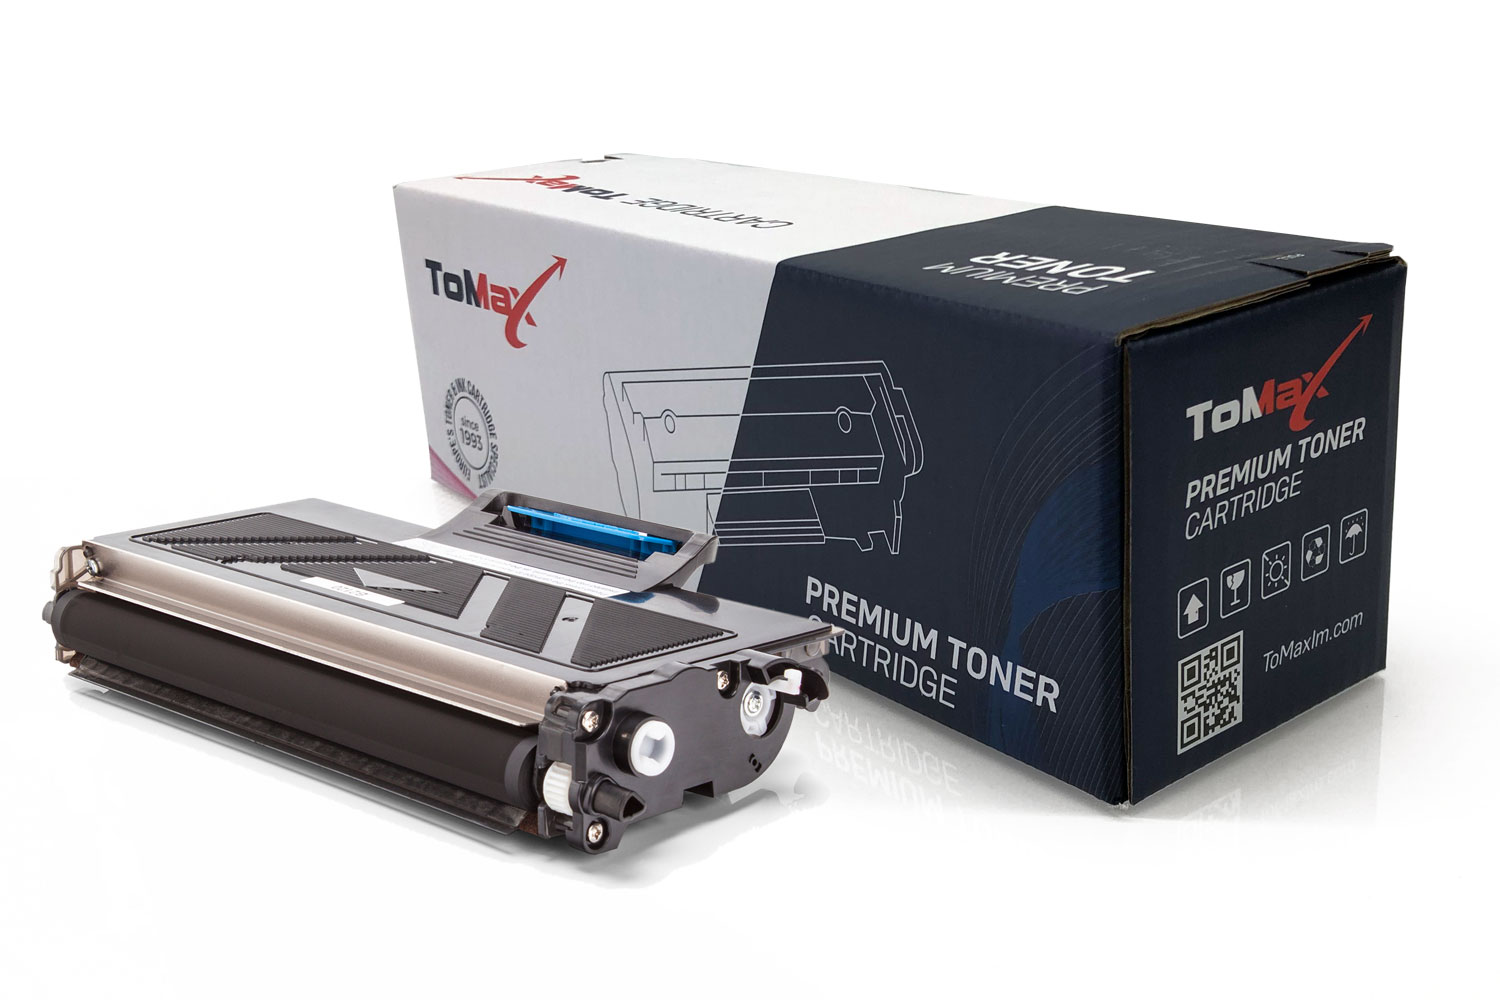 ToMax Premium Toner Cartridge replaces Brother TN-3380 Black